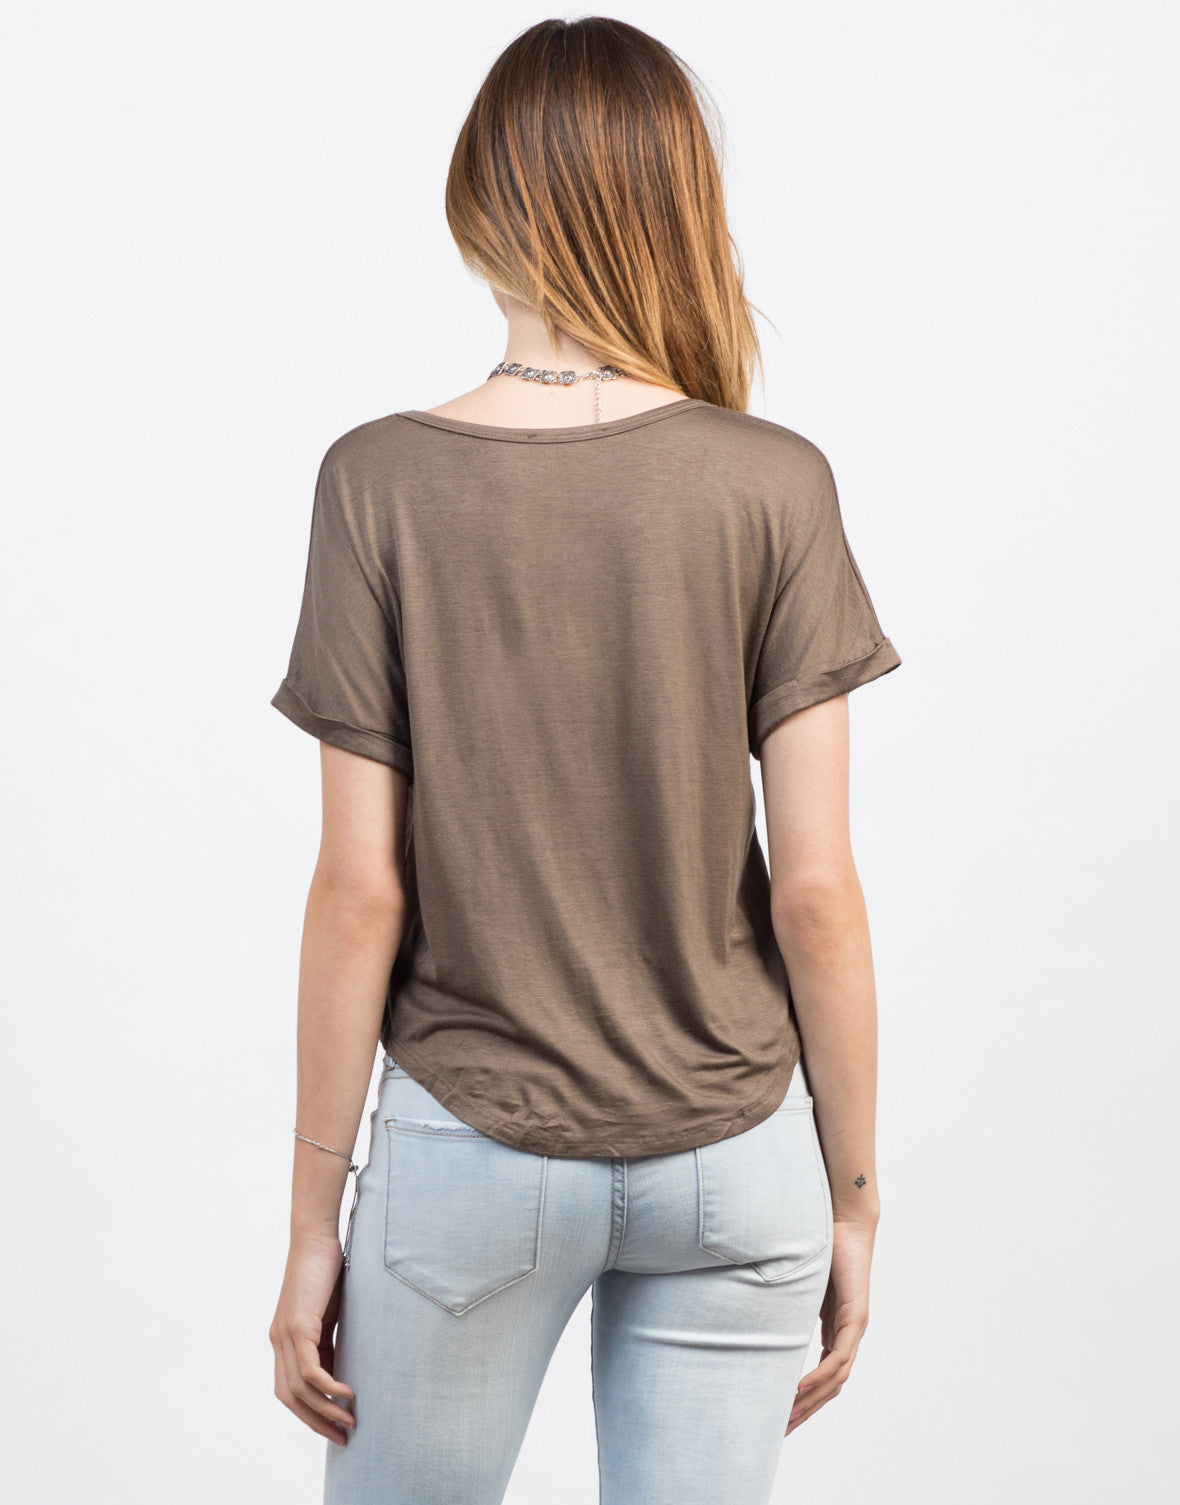 Back View of Boxy Pocket Tee